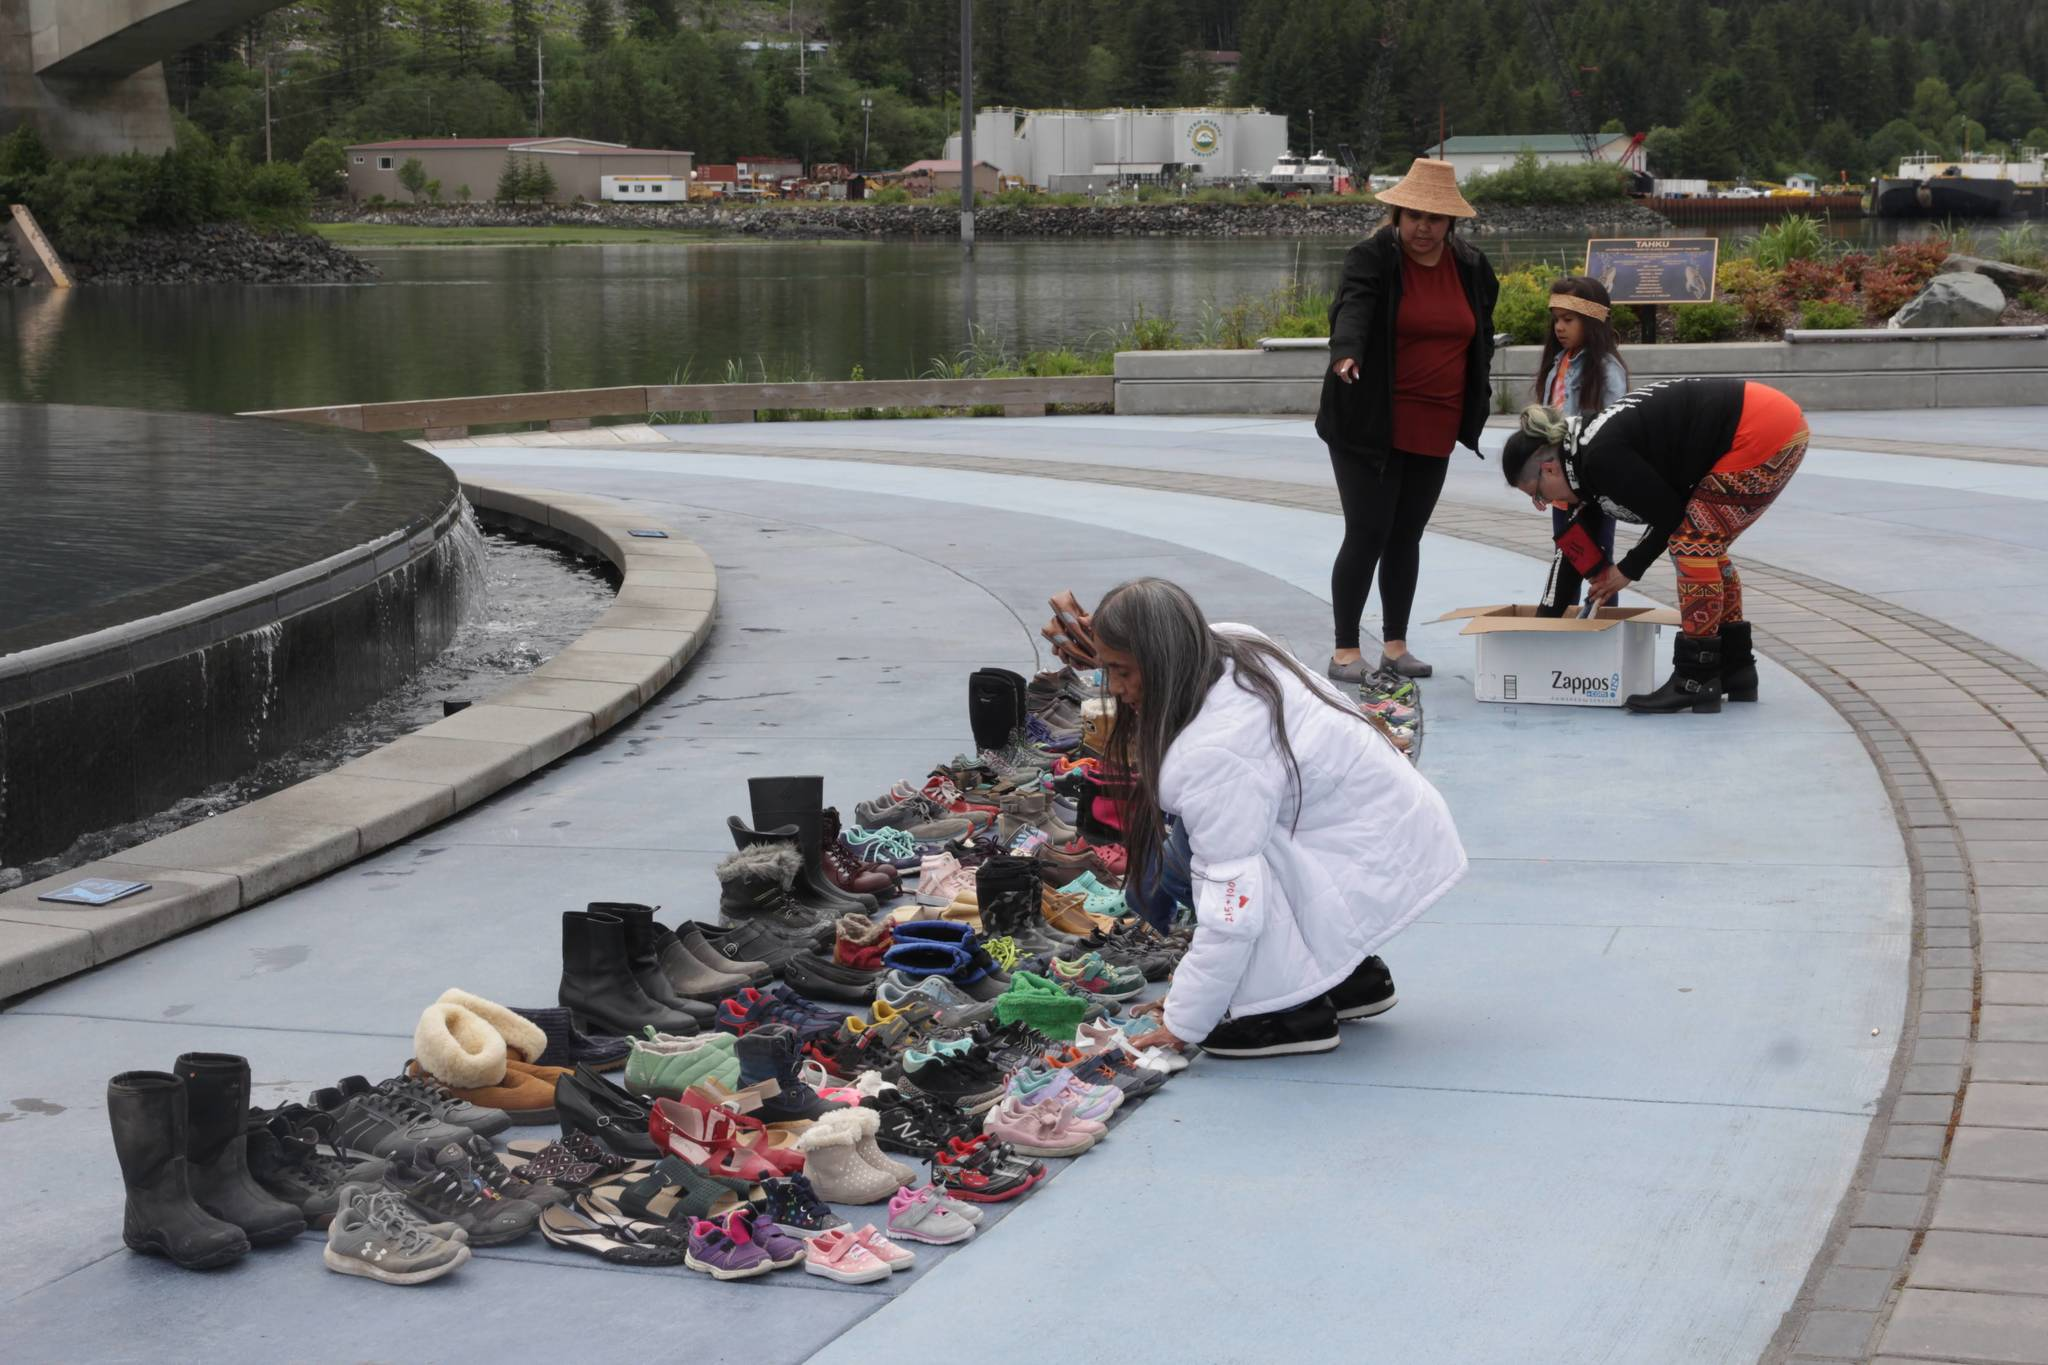 Michael S. Lockett / Juneau Empire Juneau residents place hundreds of pairs of children's shoes in front of the statue at Mayor Bill Overstreet Park on Saturday as they mourned for the 215 dead children uncovered at a residential school in Canada.